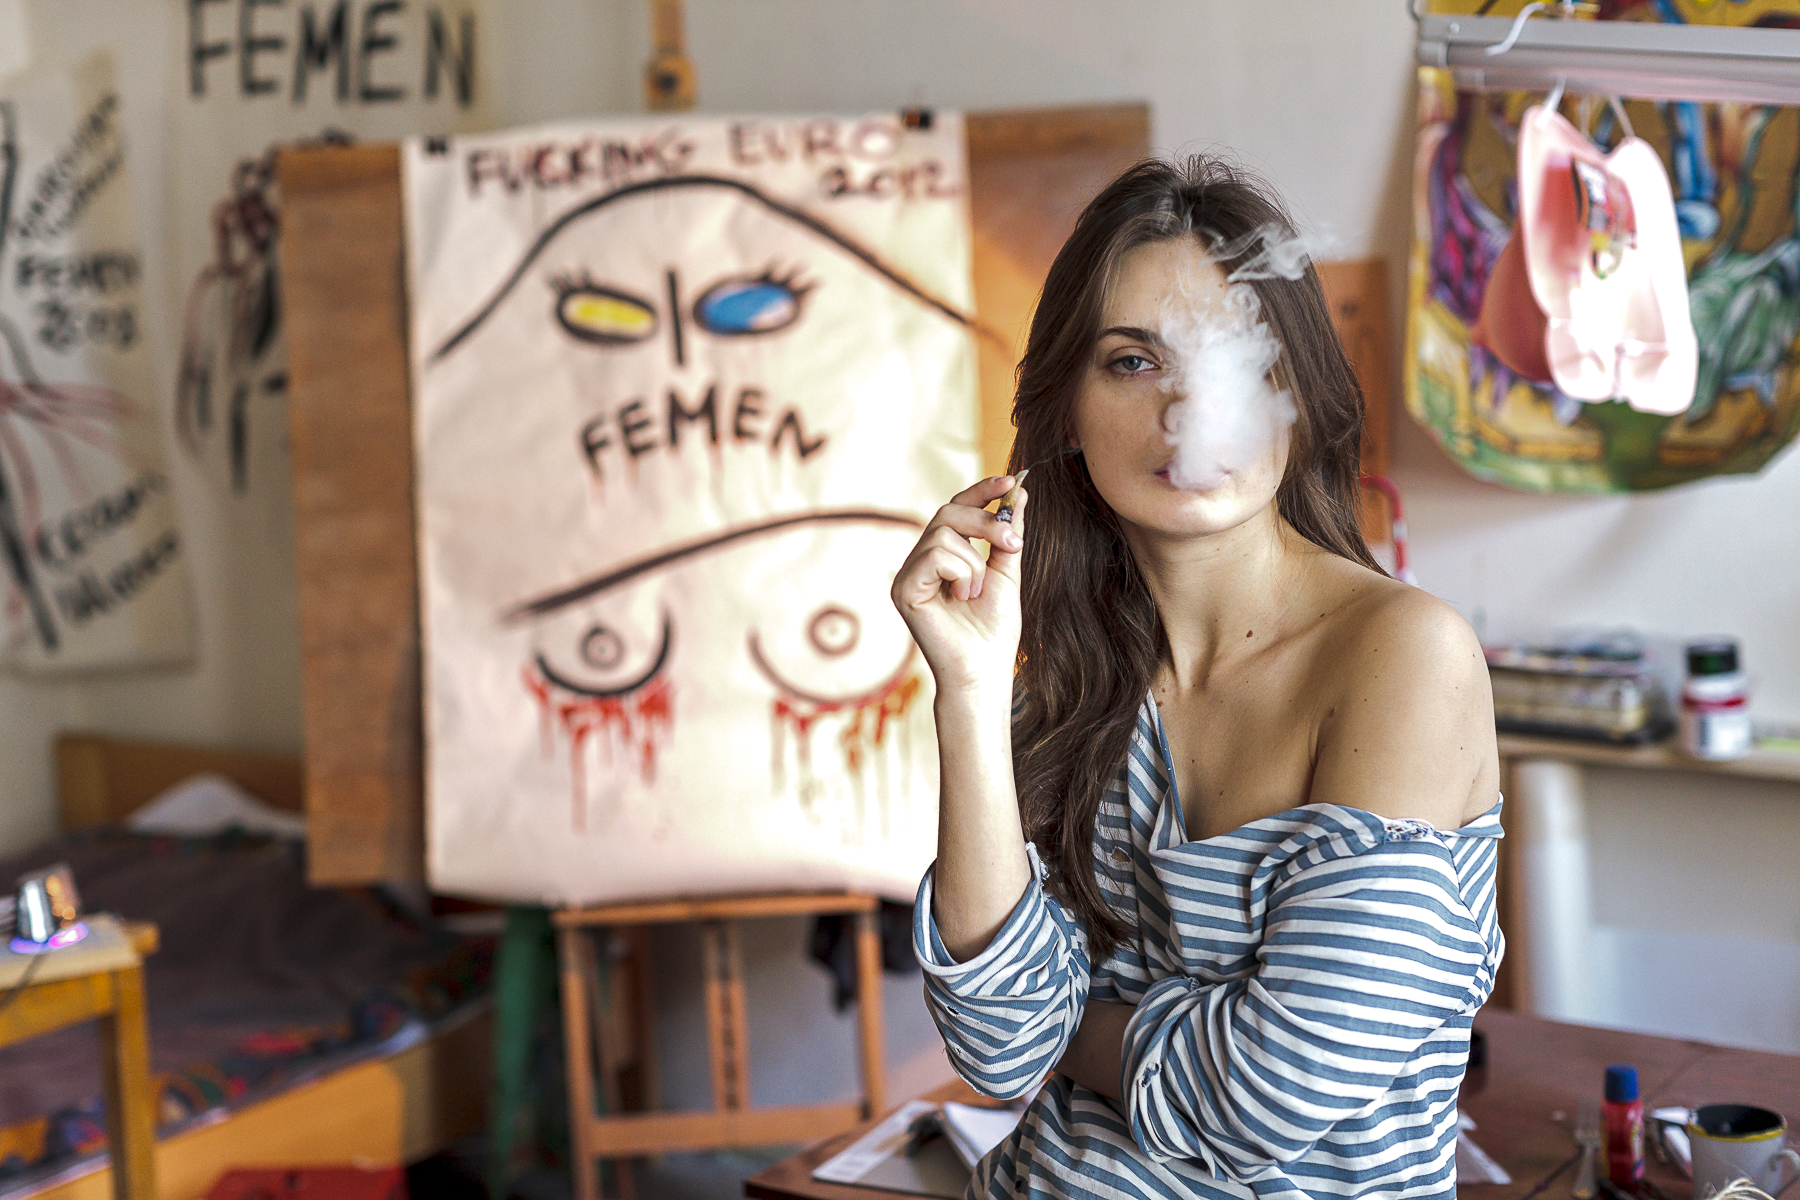 Ukraine, février 2012. Oxana, la peintre des FEMEN chez elle à Kiev.Ukraine, February 2012. Oxana painter of the feminist group FEMEN in her studio in Kiev.